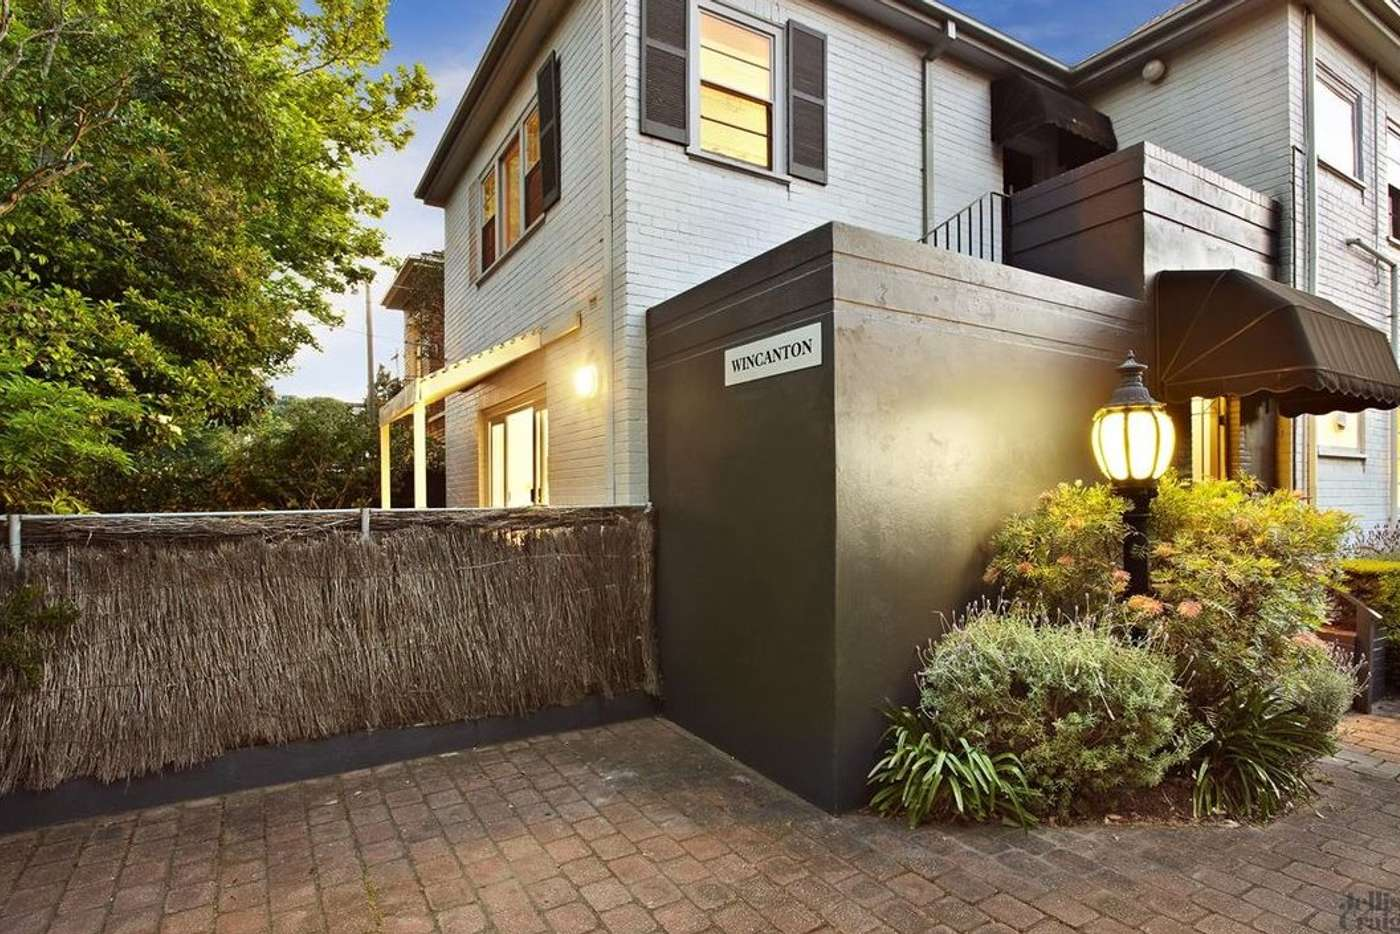 Main view of Homely apartment listing, 2/43 Grange Road, Toorak VIC 3142